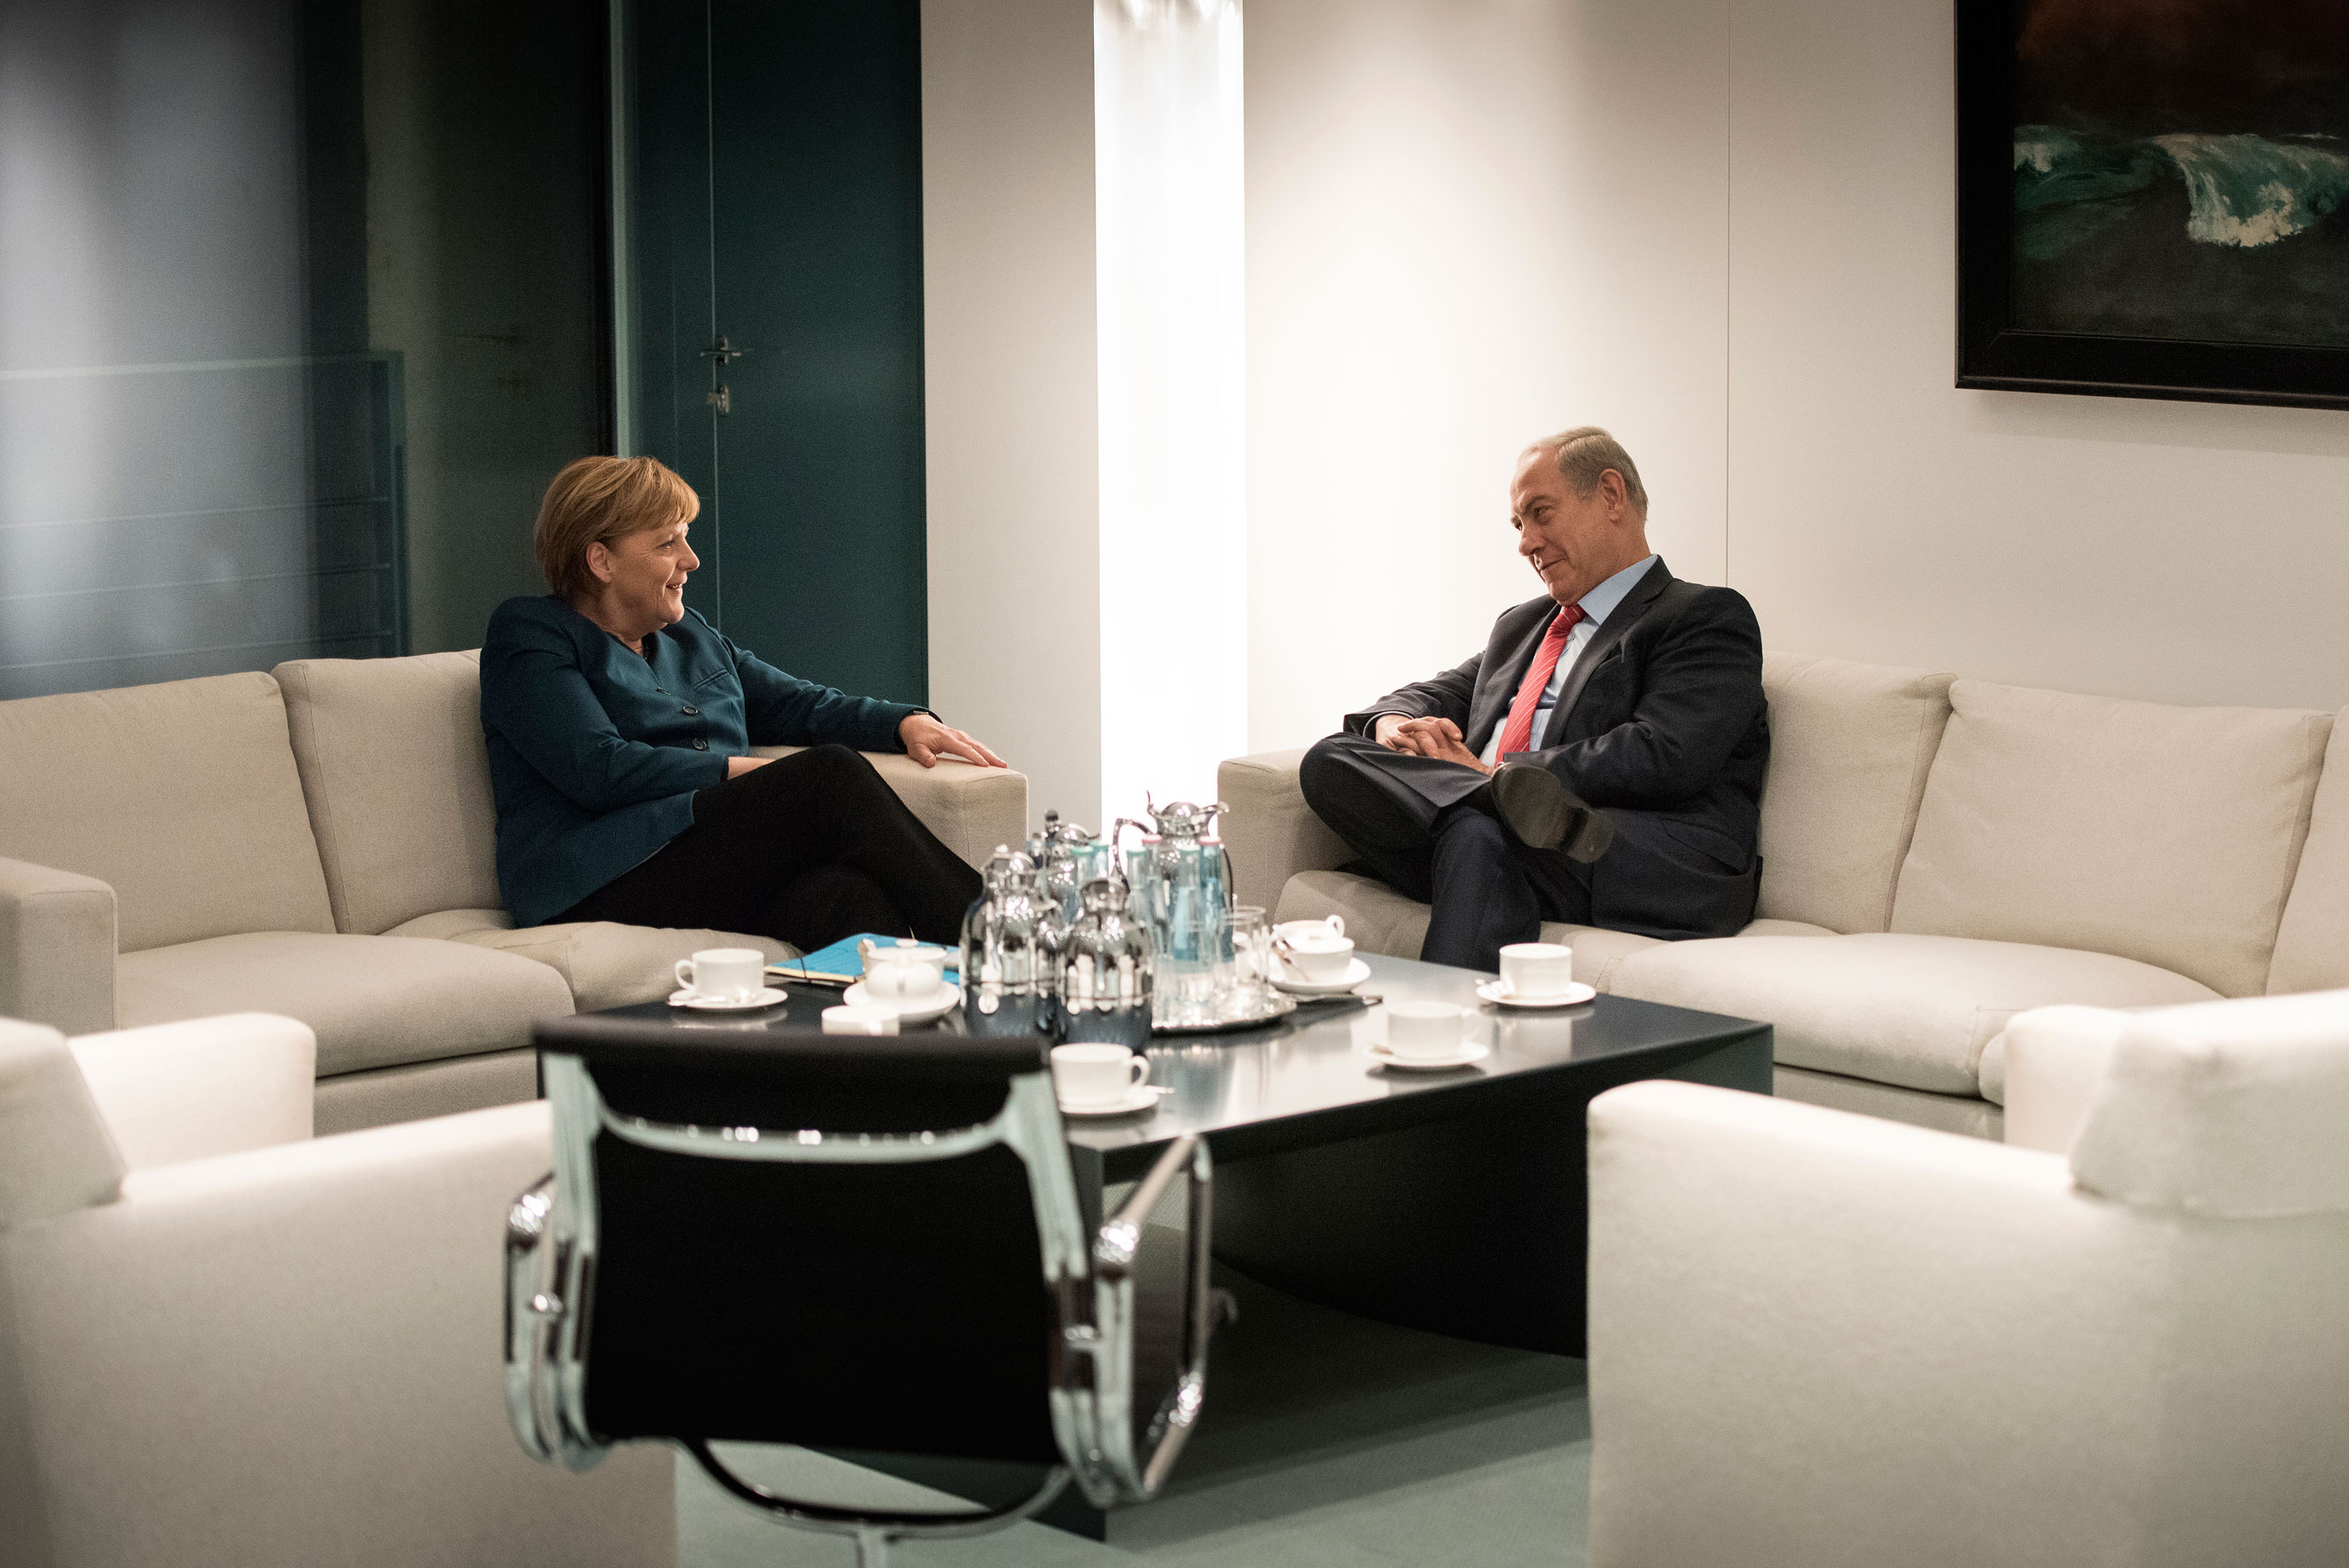 October: Chancellor Angela Merkel and Israeli Prime Minister Benjamin Netanyahu talk at the Federal Chancellery on Oct. 21, 2015 in Berlin.